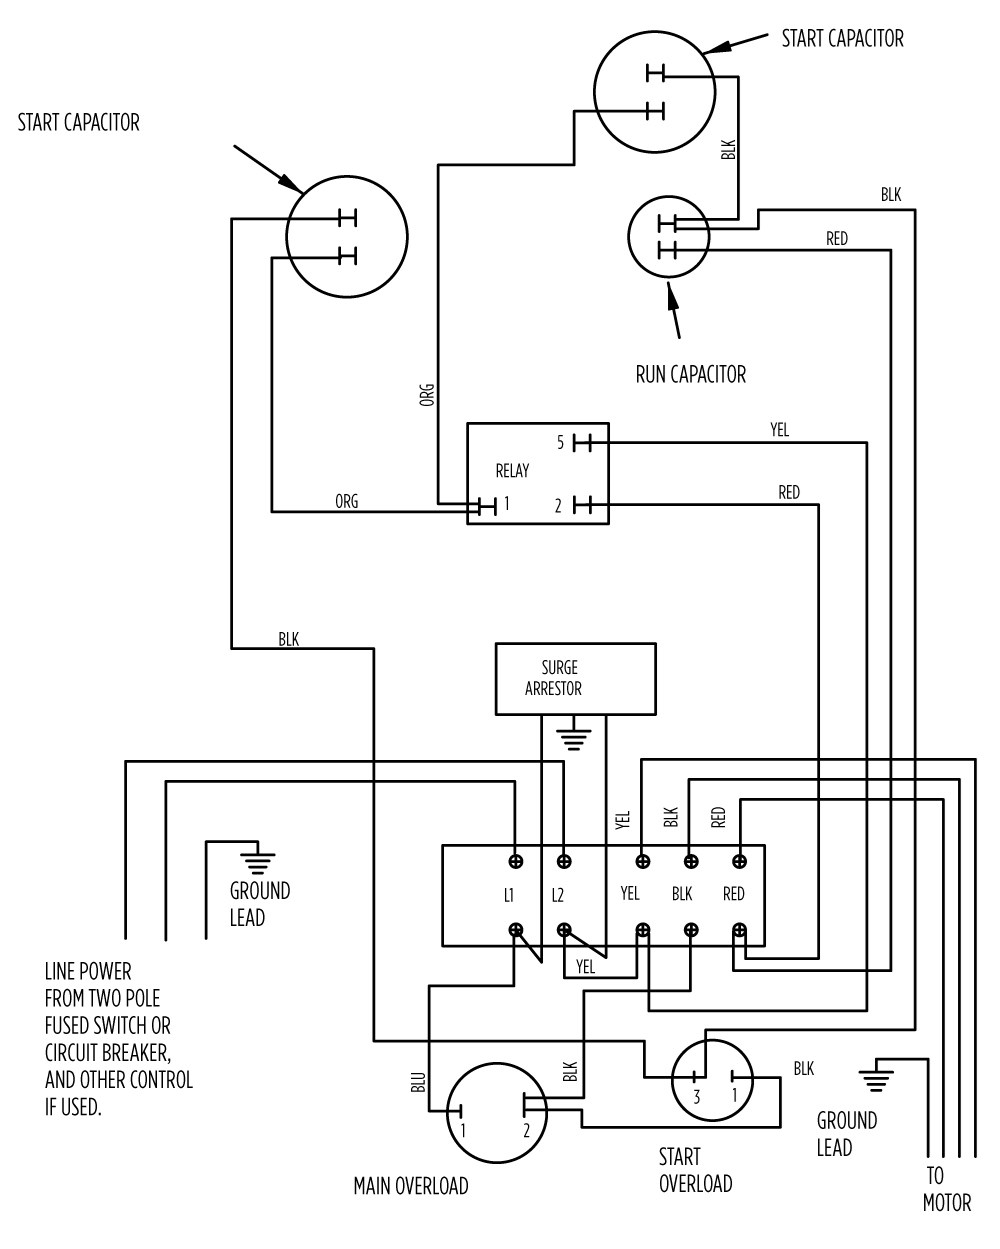 75 hp standard 282 201 9210_aim gallery?format=jpg&quality=80 aim manual page 56 single phase motors and controls motor north american electric motor wiring diagram at mr168.co